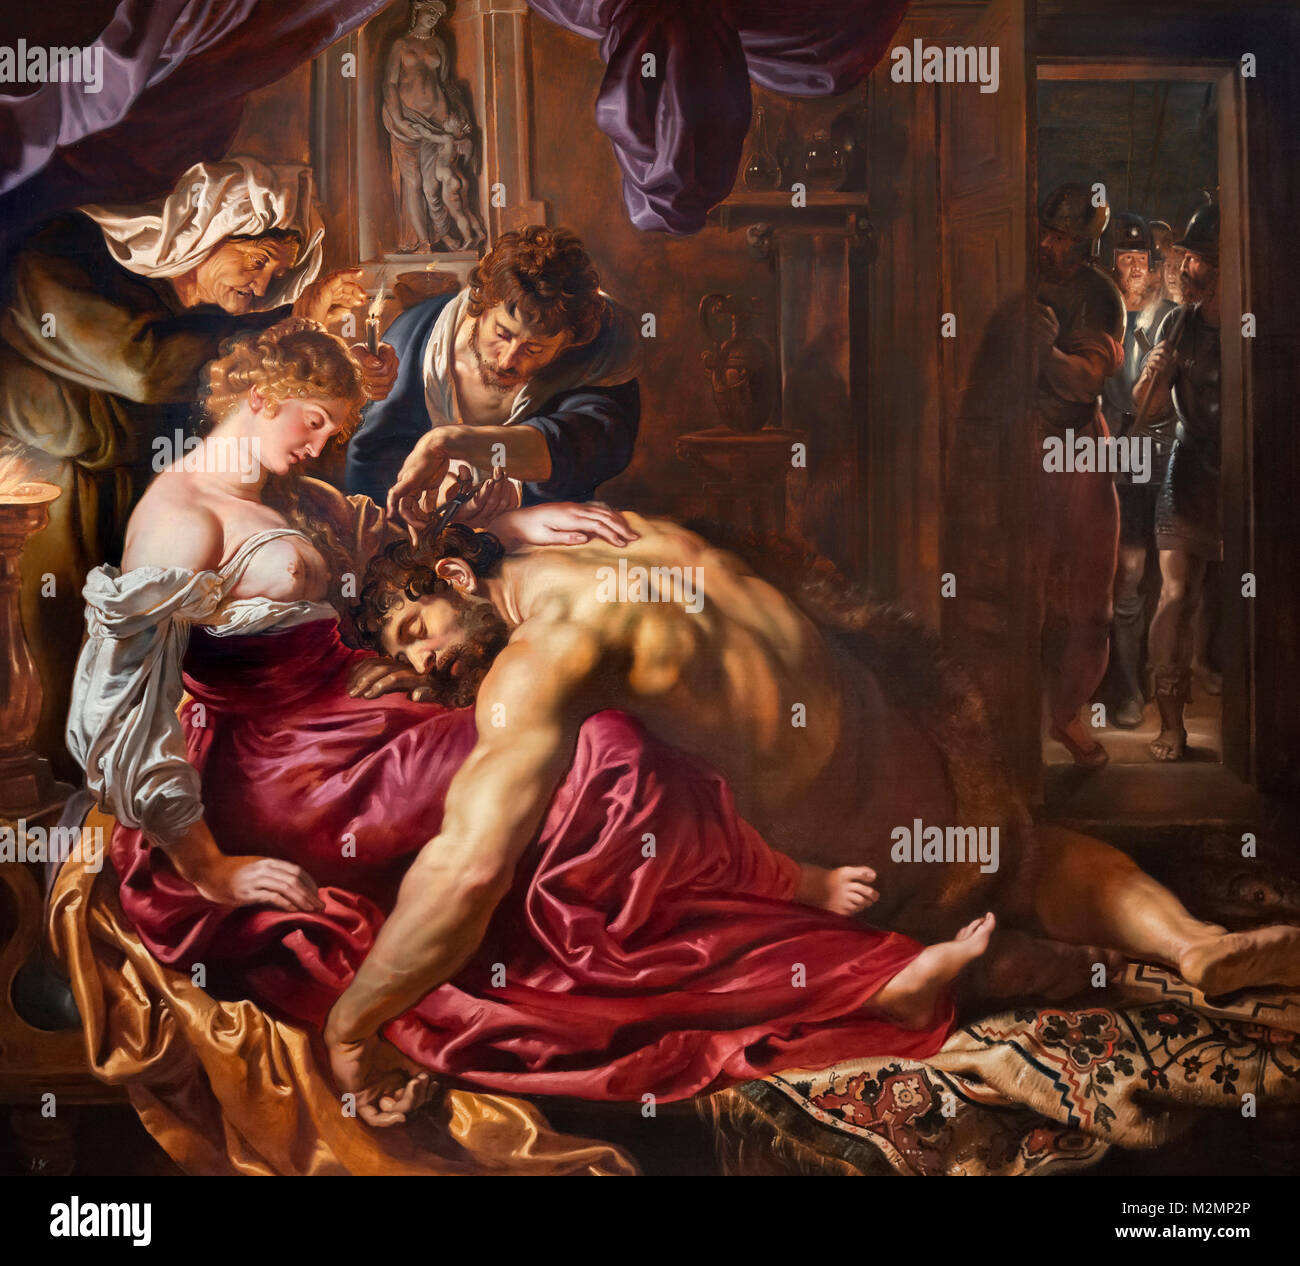 Samson and Delilah by Peter Paul Rubens (1577-1640), oil on wood, 1609/10 - Stock Image